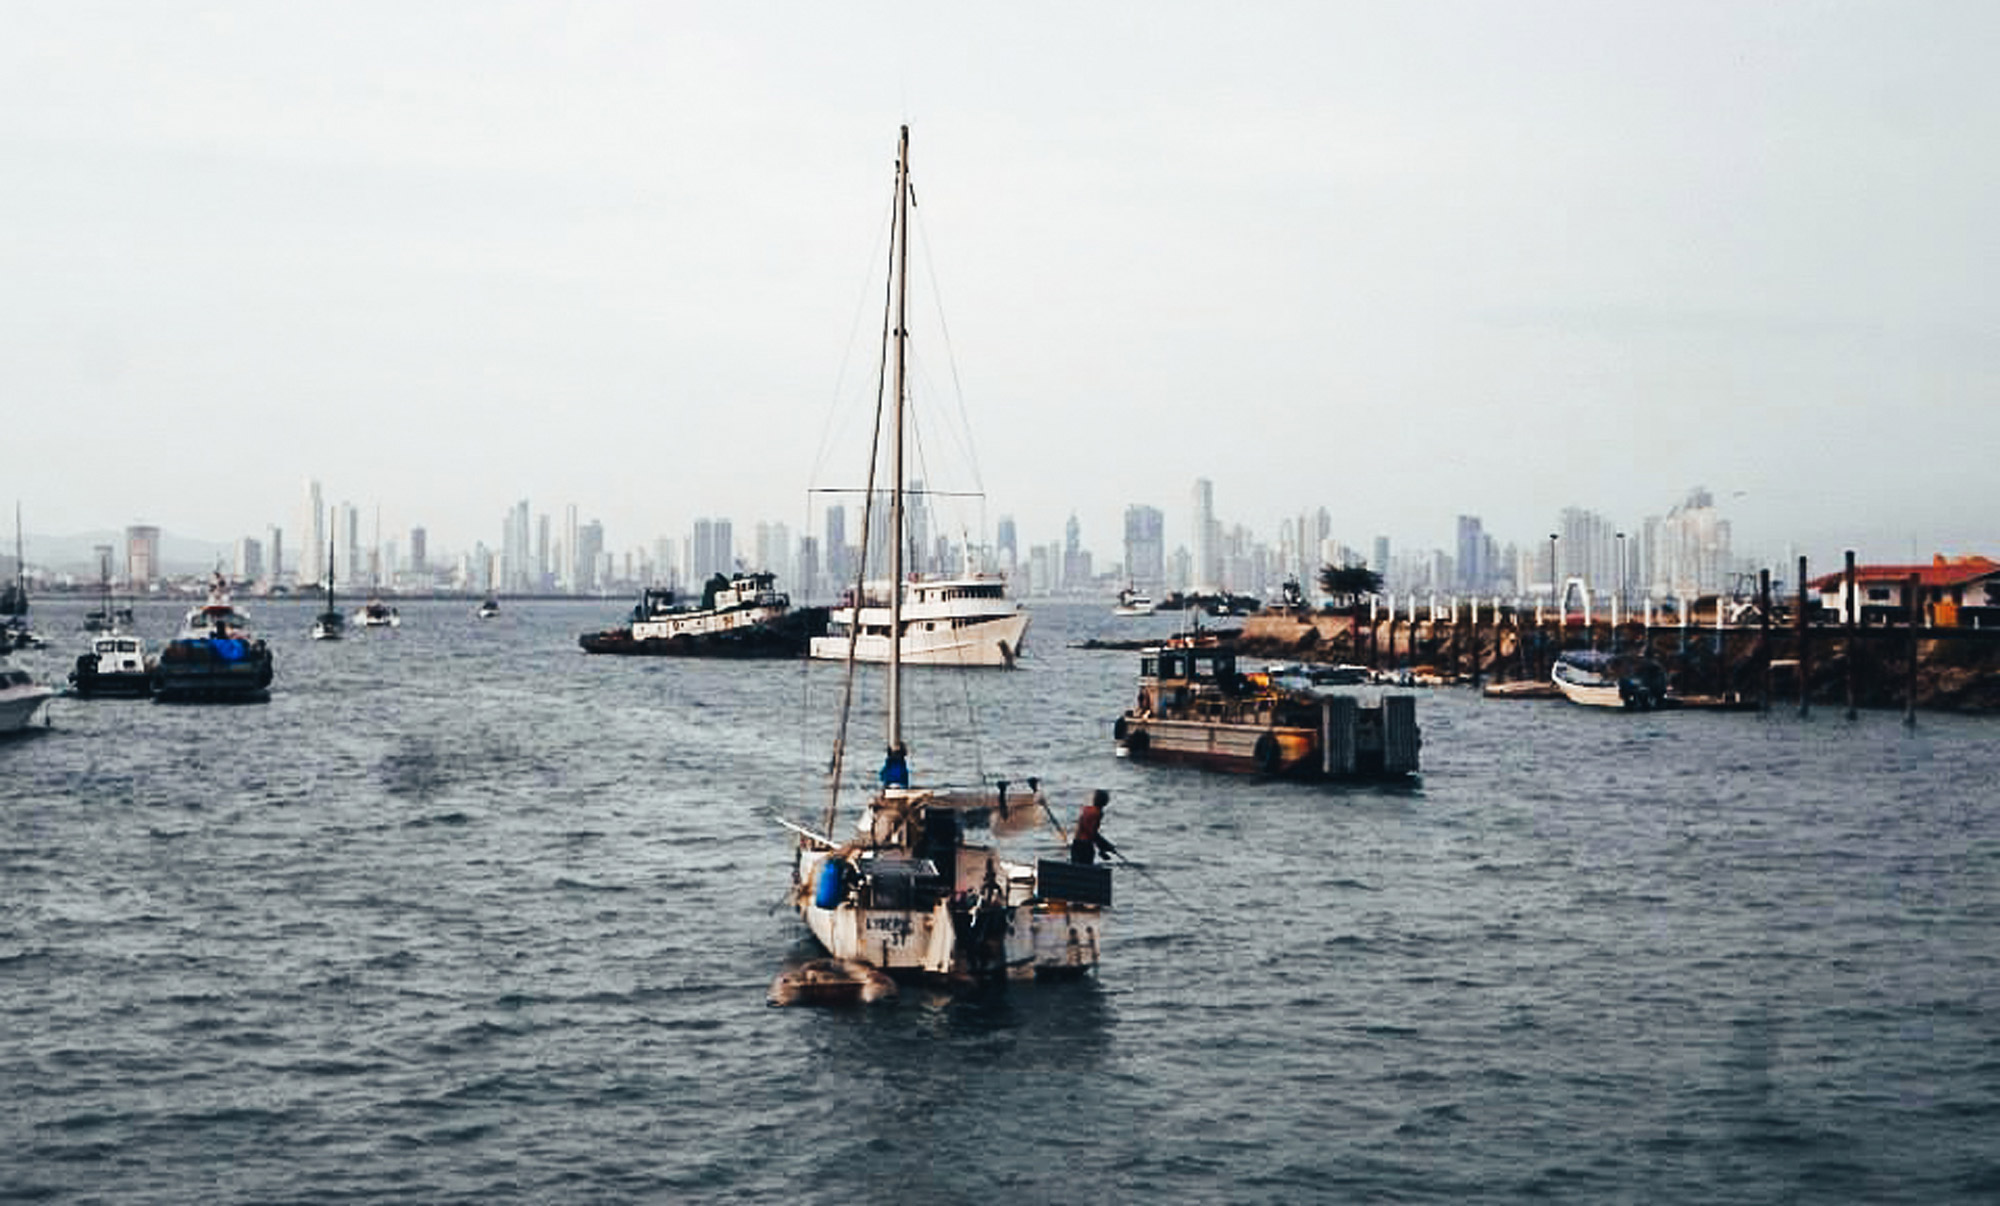 Backpacking Panama city? Here's why I hated and loved it. The boats sitting on the water in the city port